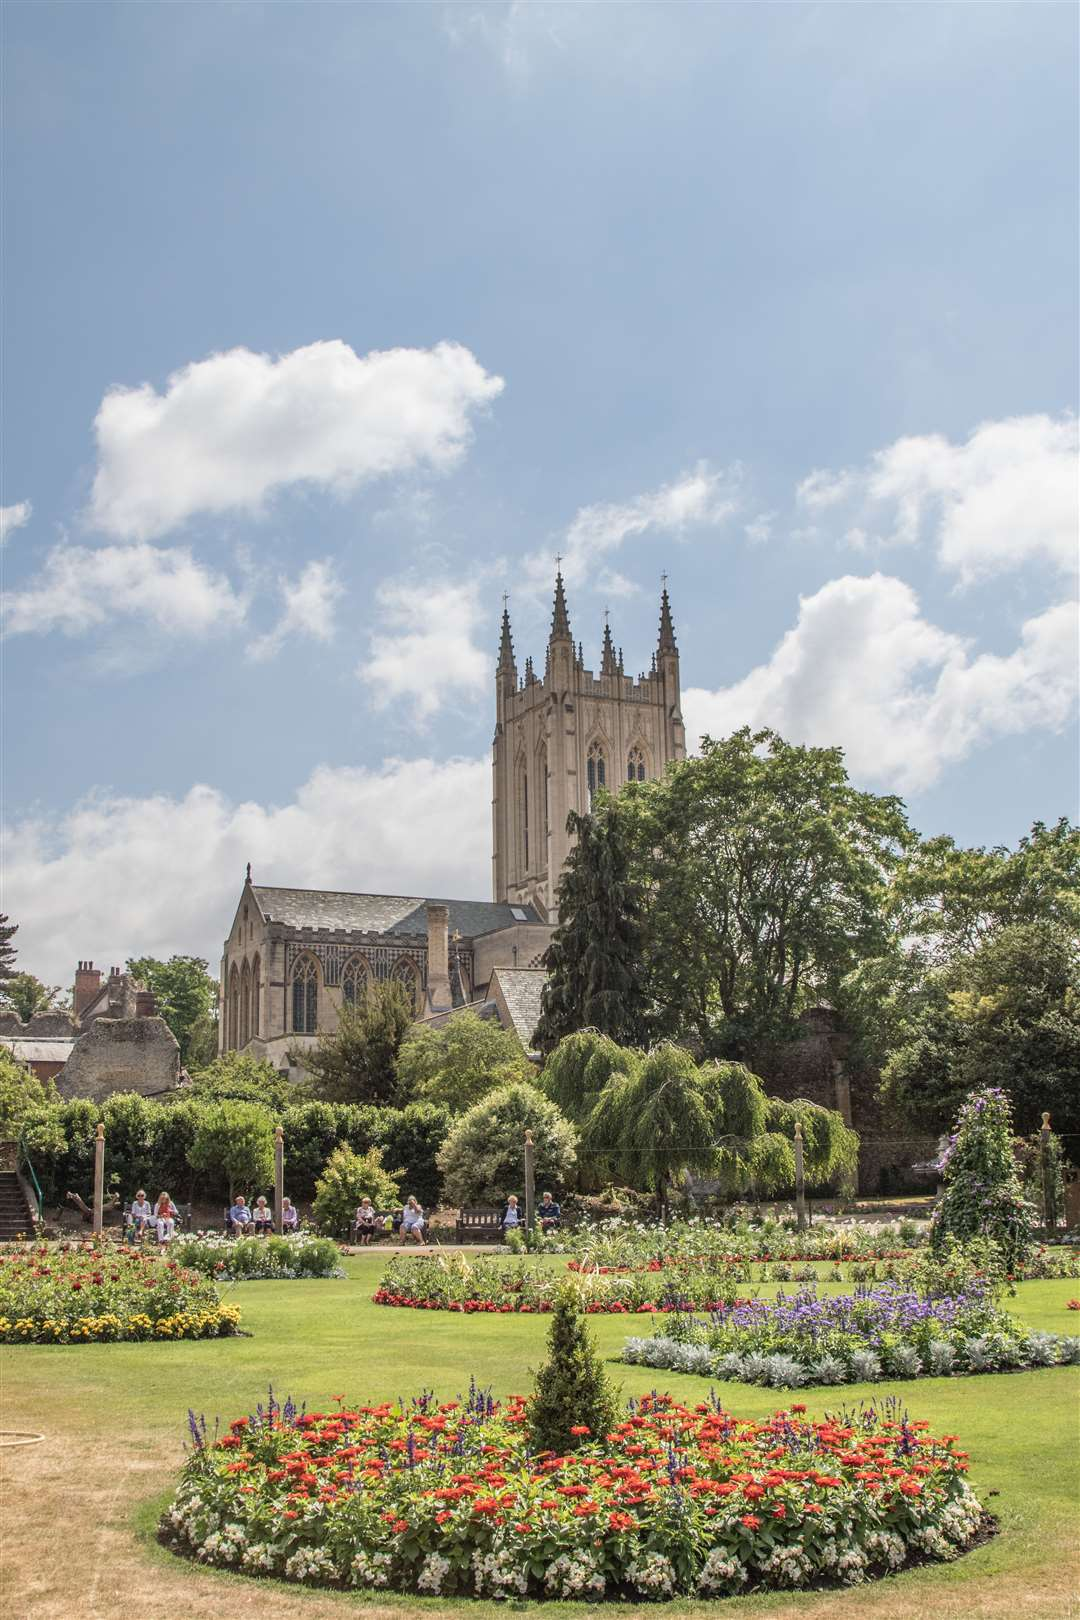 A view of the Abbey Gardens in Bury St Edmunds. (11507820)